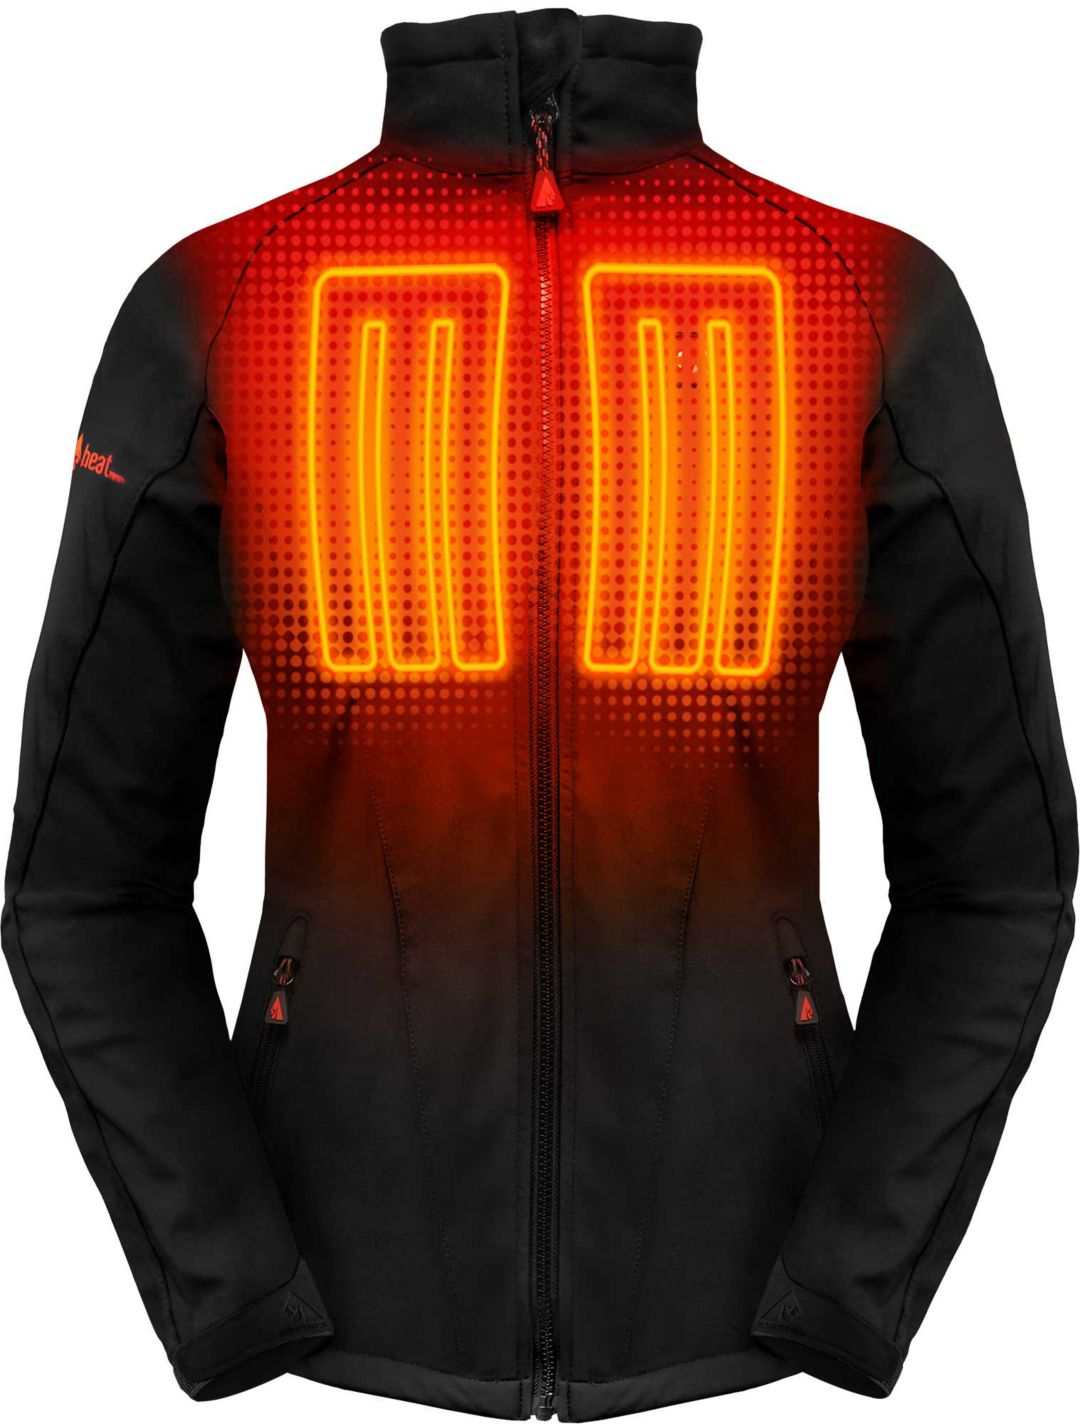 Womens Heated Clothing >> Actionheat Women S 5v Battery Heated Jacket Dick S Sporting Goods